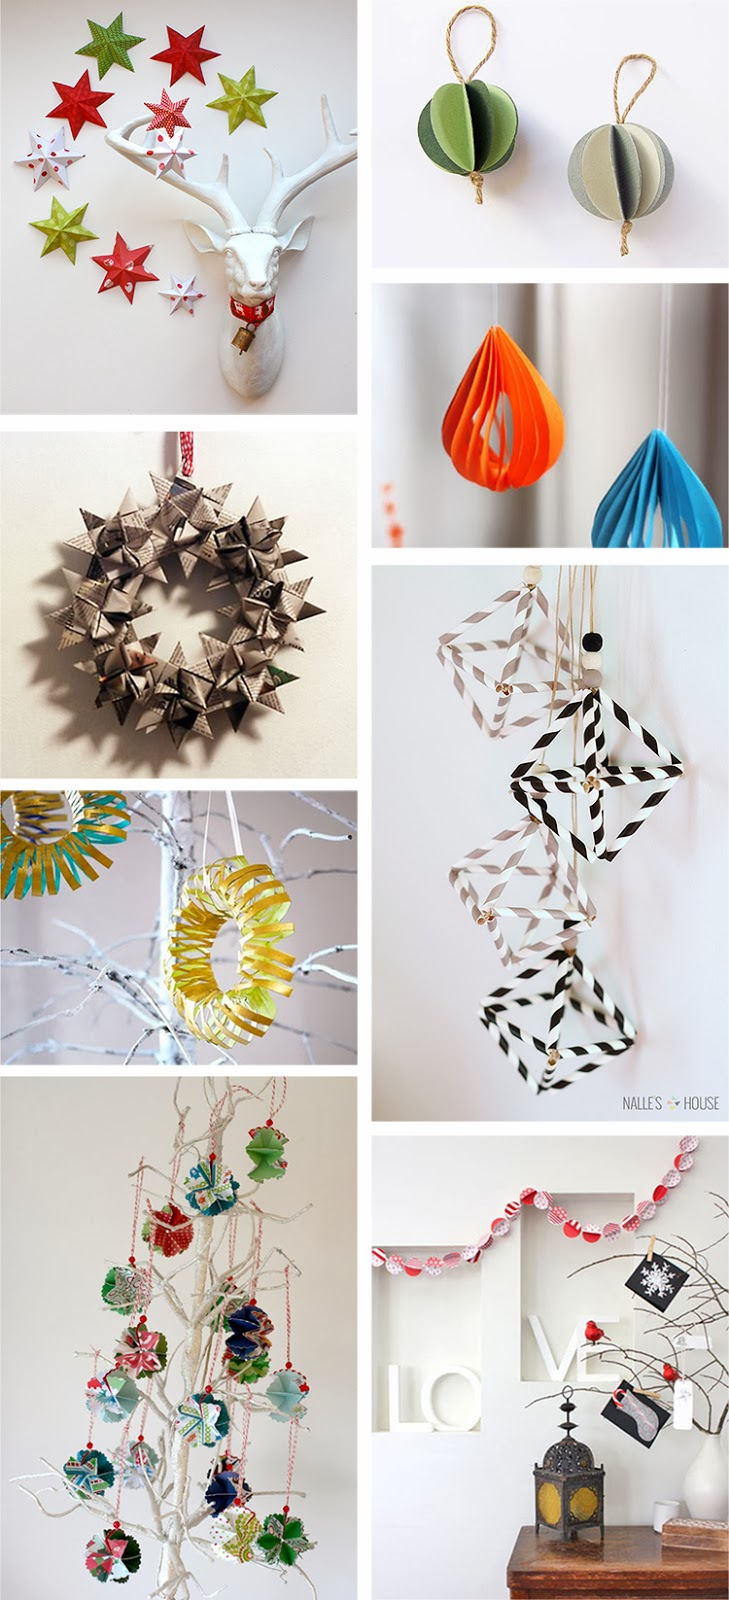 Christmas Decorations Diy With Paper : Diy monday paper christmas ornaments ohoh